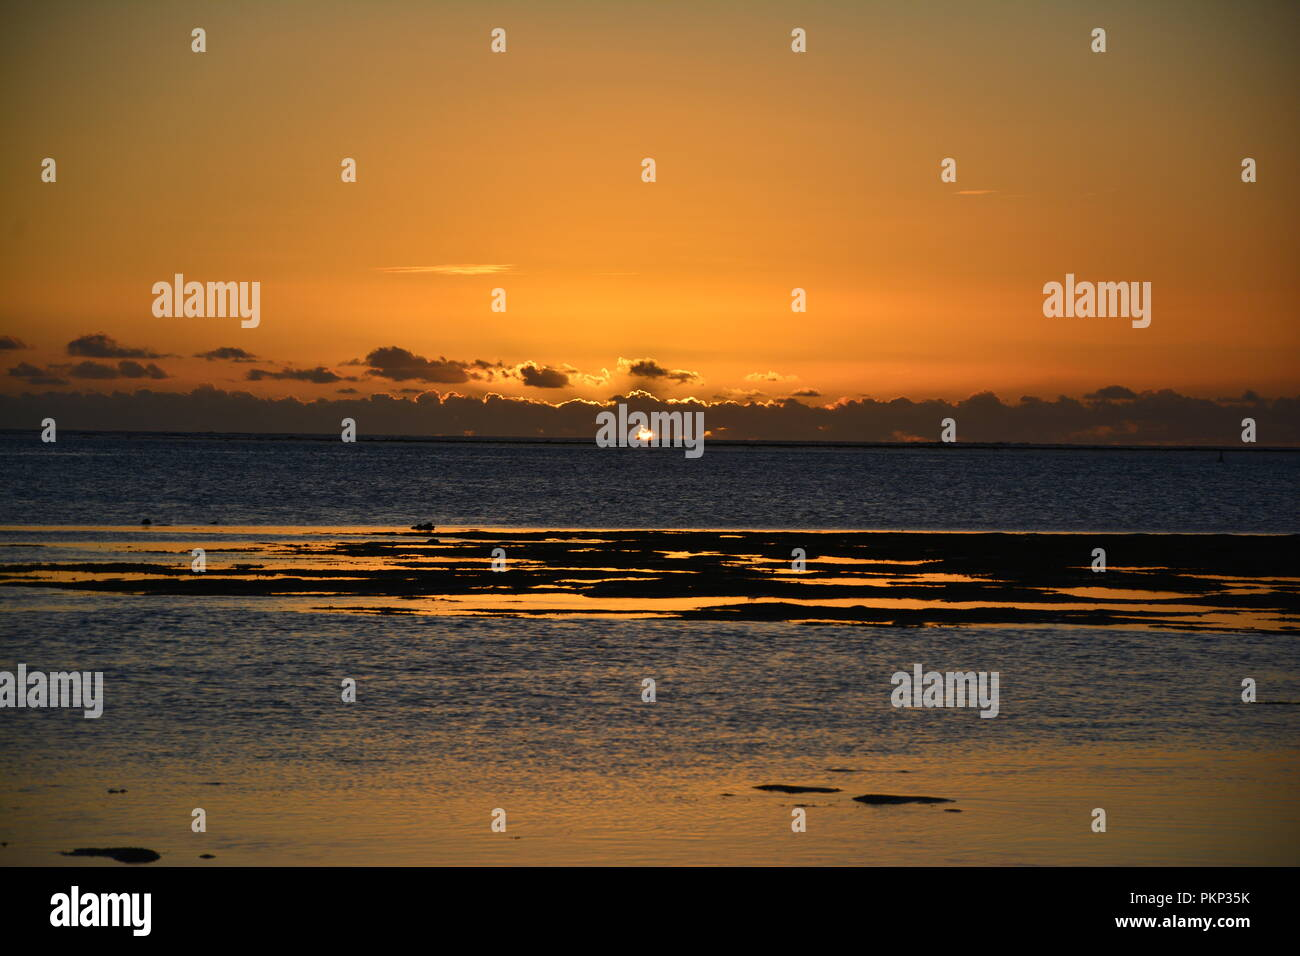 Sunset Bel Ombre Beach, Mauritius - Stock Image